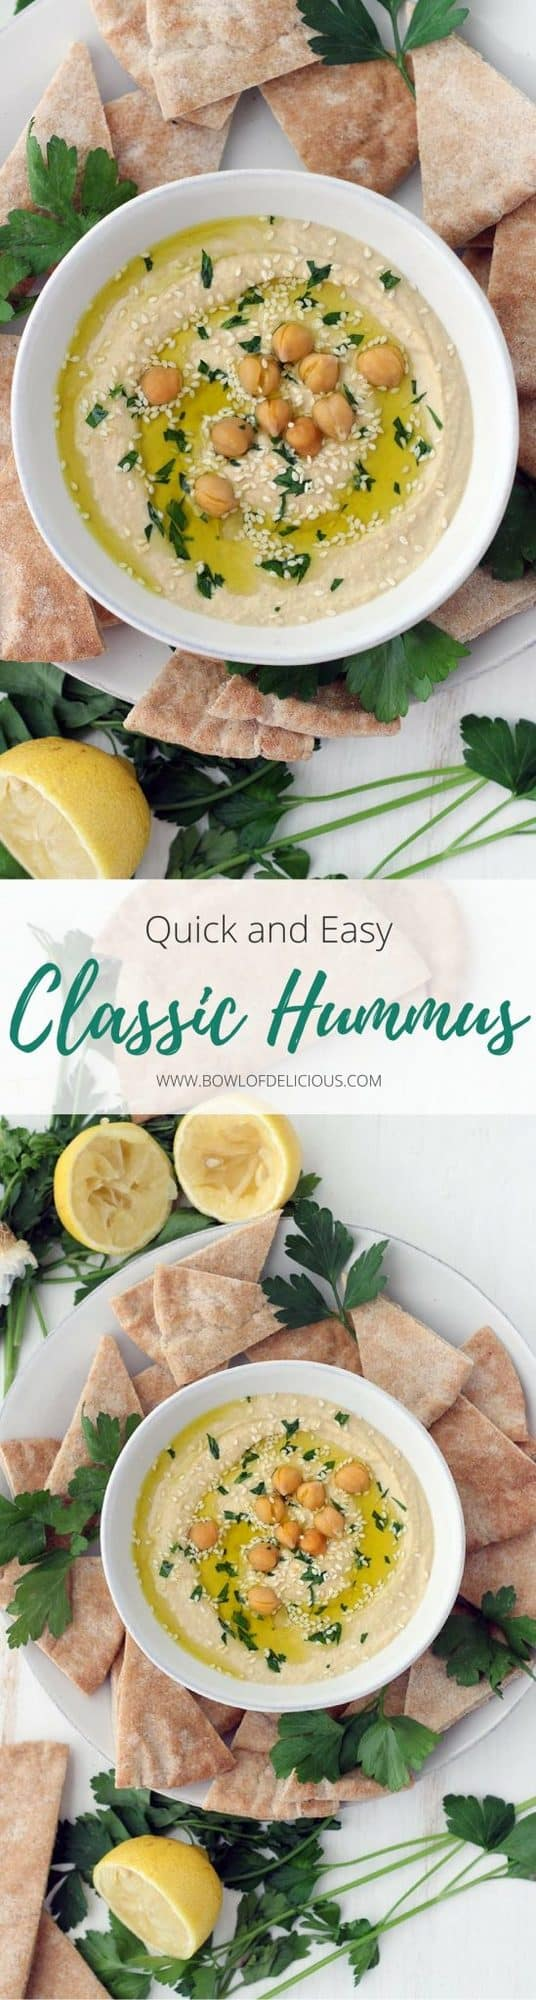 This Quick and Easy Classic Hummus recipe is a fast way to get super smooth, creamy hummus without using dry beans or removing the skins! It's high in fiber, protein, and healthy fats, and it makes a wonderful snack on pita bread or spread on sandwiches. #HummusRecipe #ClassicHummus #HealthySnackRecipes #ChickpeaRecipes #VeganRecipes #GlutenFreeSnacks